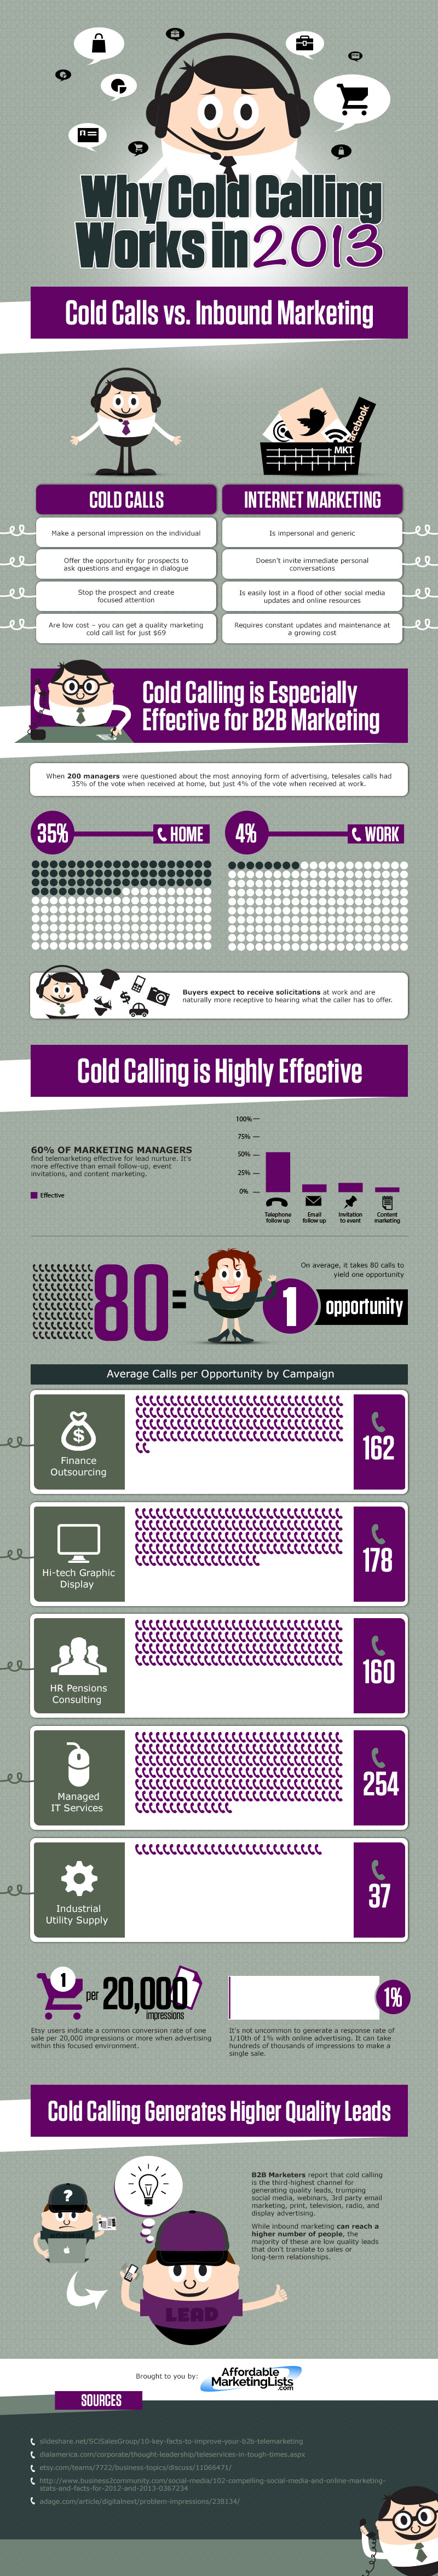 Why Cold Calling Works In 2013